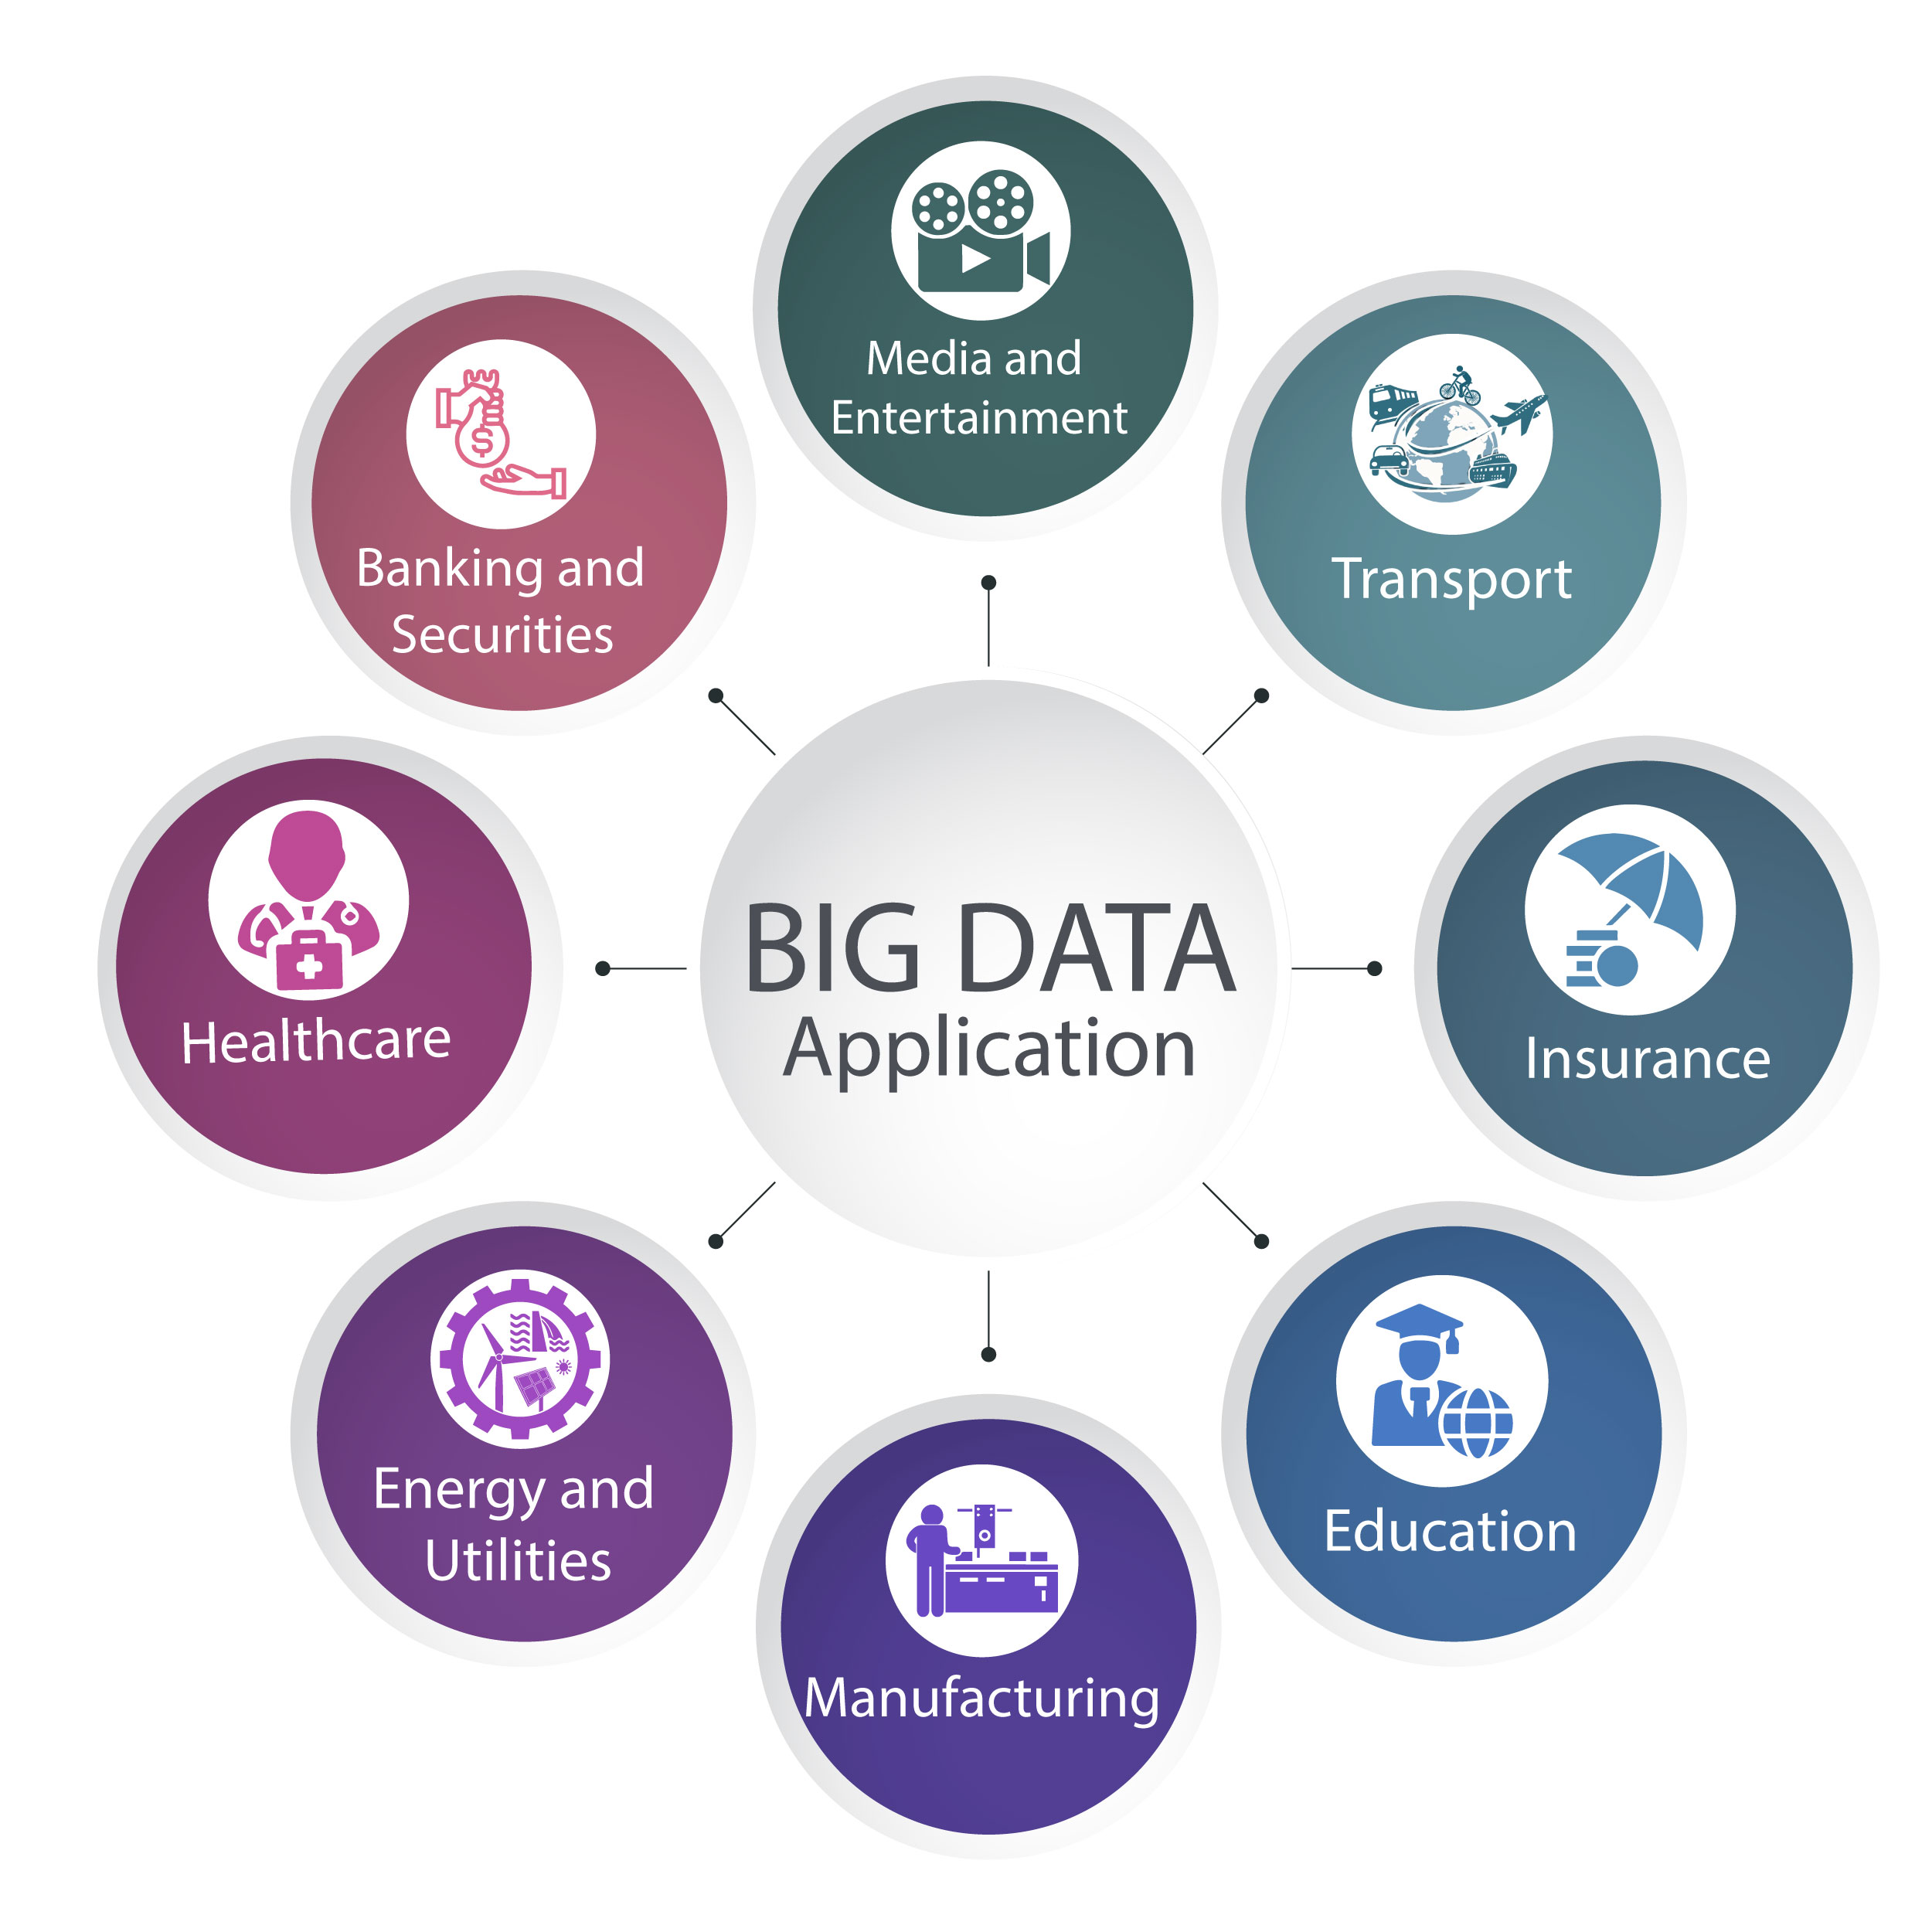 Big Data Application